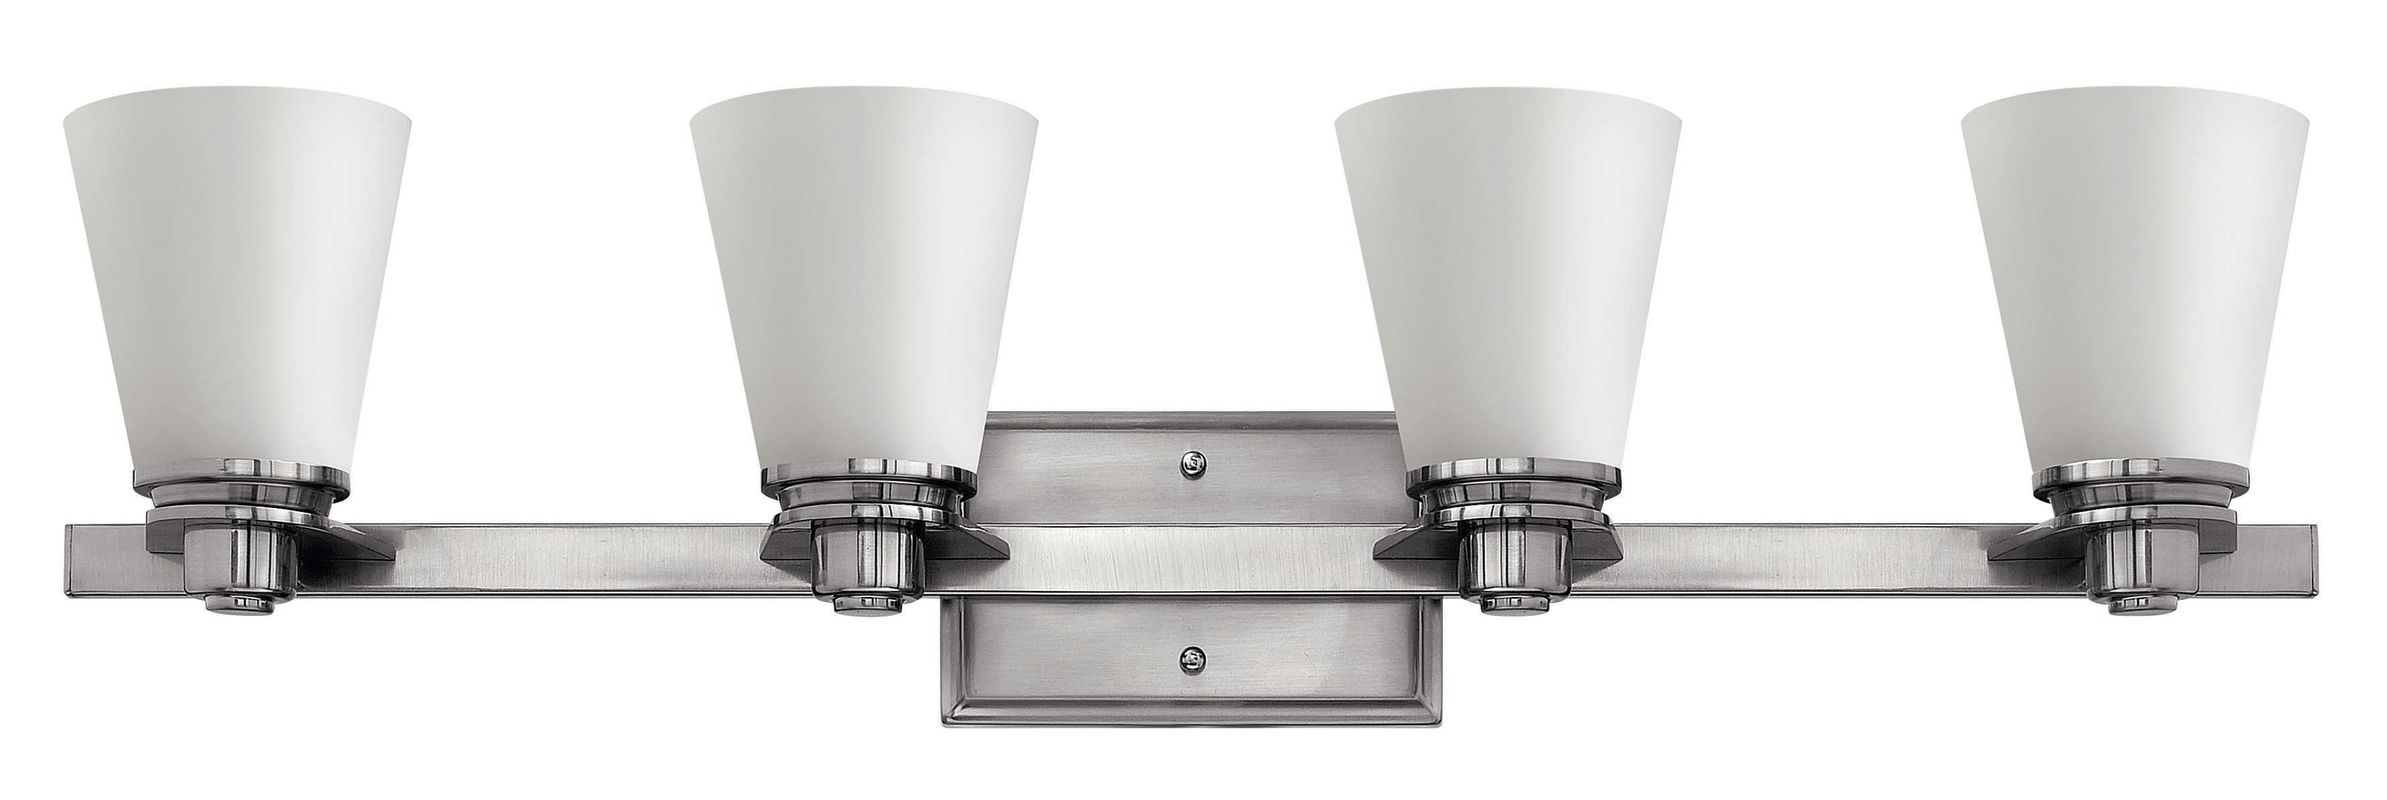 Hinkley Lighting 5554 4 Light Bathroom Vanity Light from the Avon Sale $259.00 ITEM: bci1056273 ID#:5554BN UPC: 640665555400 :